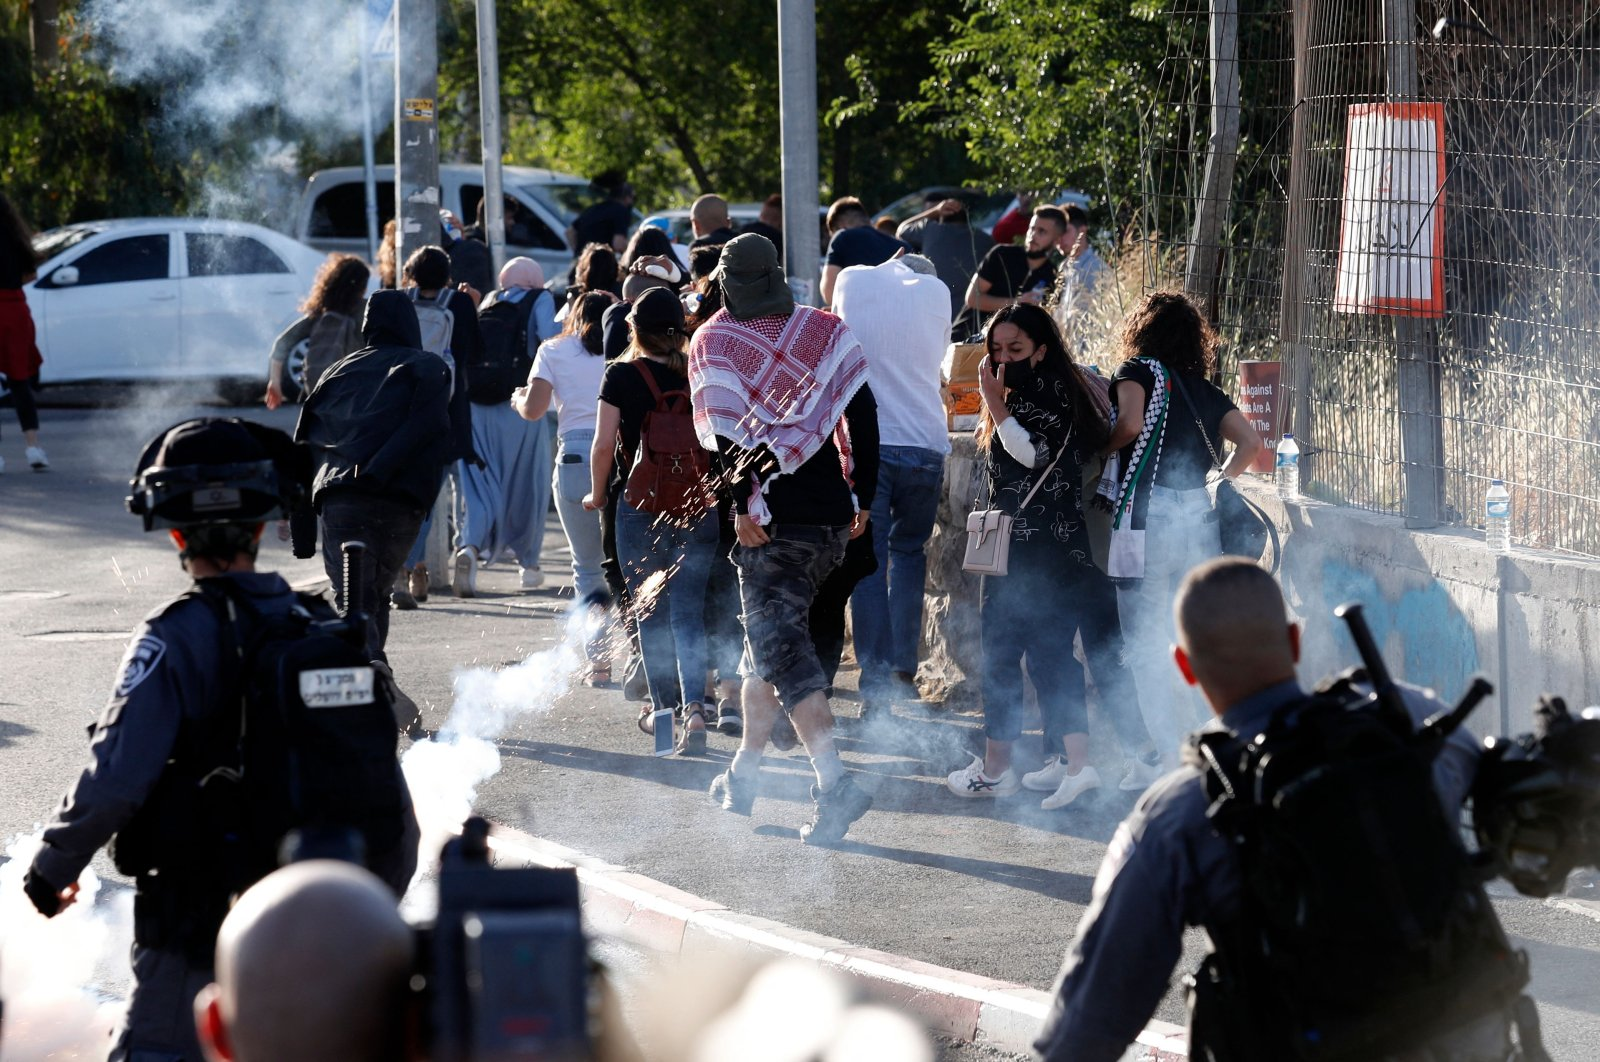 Israeli security forces fire tear gas as Palestinian protesters and activists flee, near an Israeli Police checkpoint at the entrance of the Sheikh Jarrah neighborhood in East Jerusalem, during a rally demanding the reopening of the roadblock, on May 29, 2021. (AFP Photo)